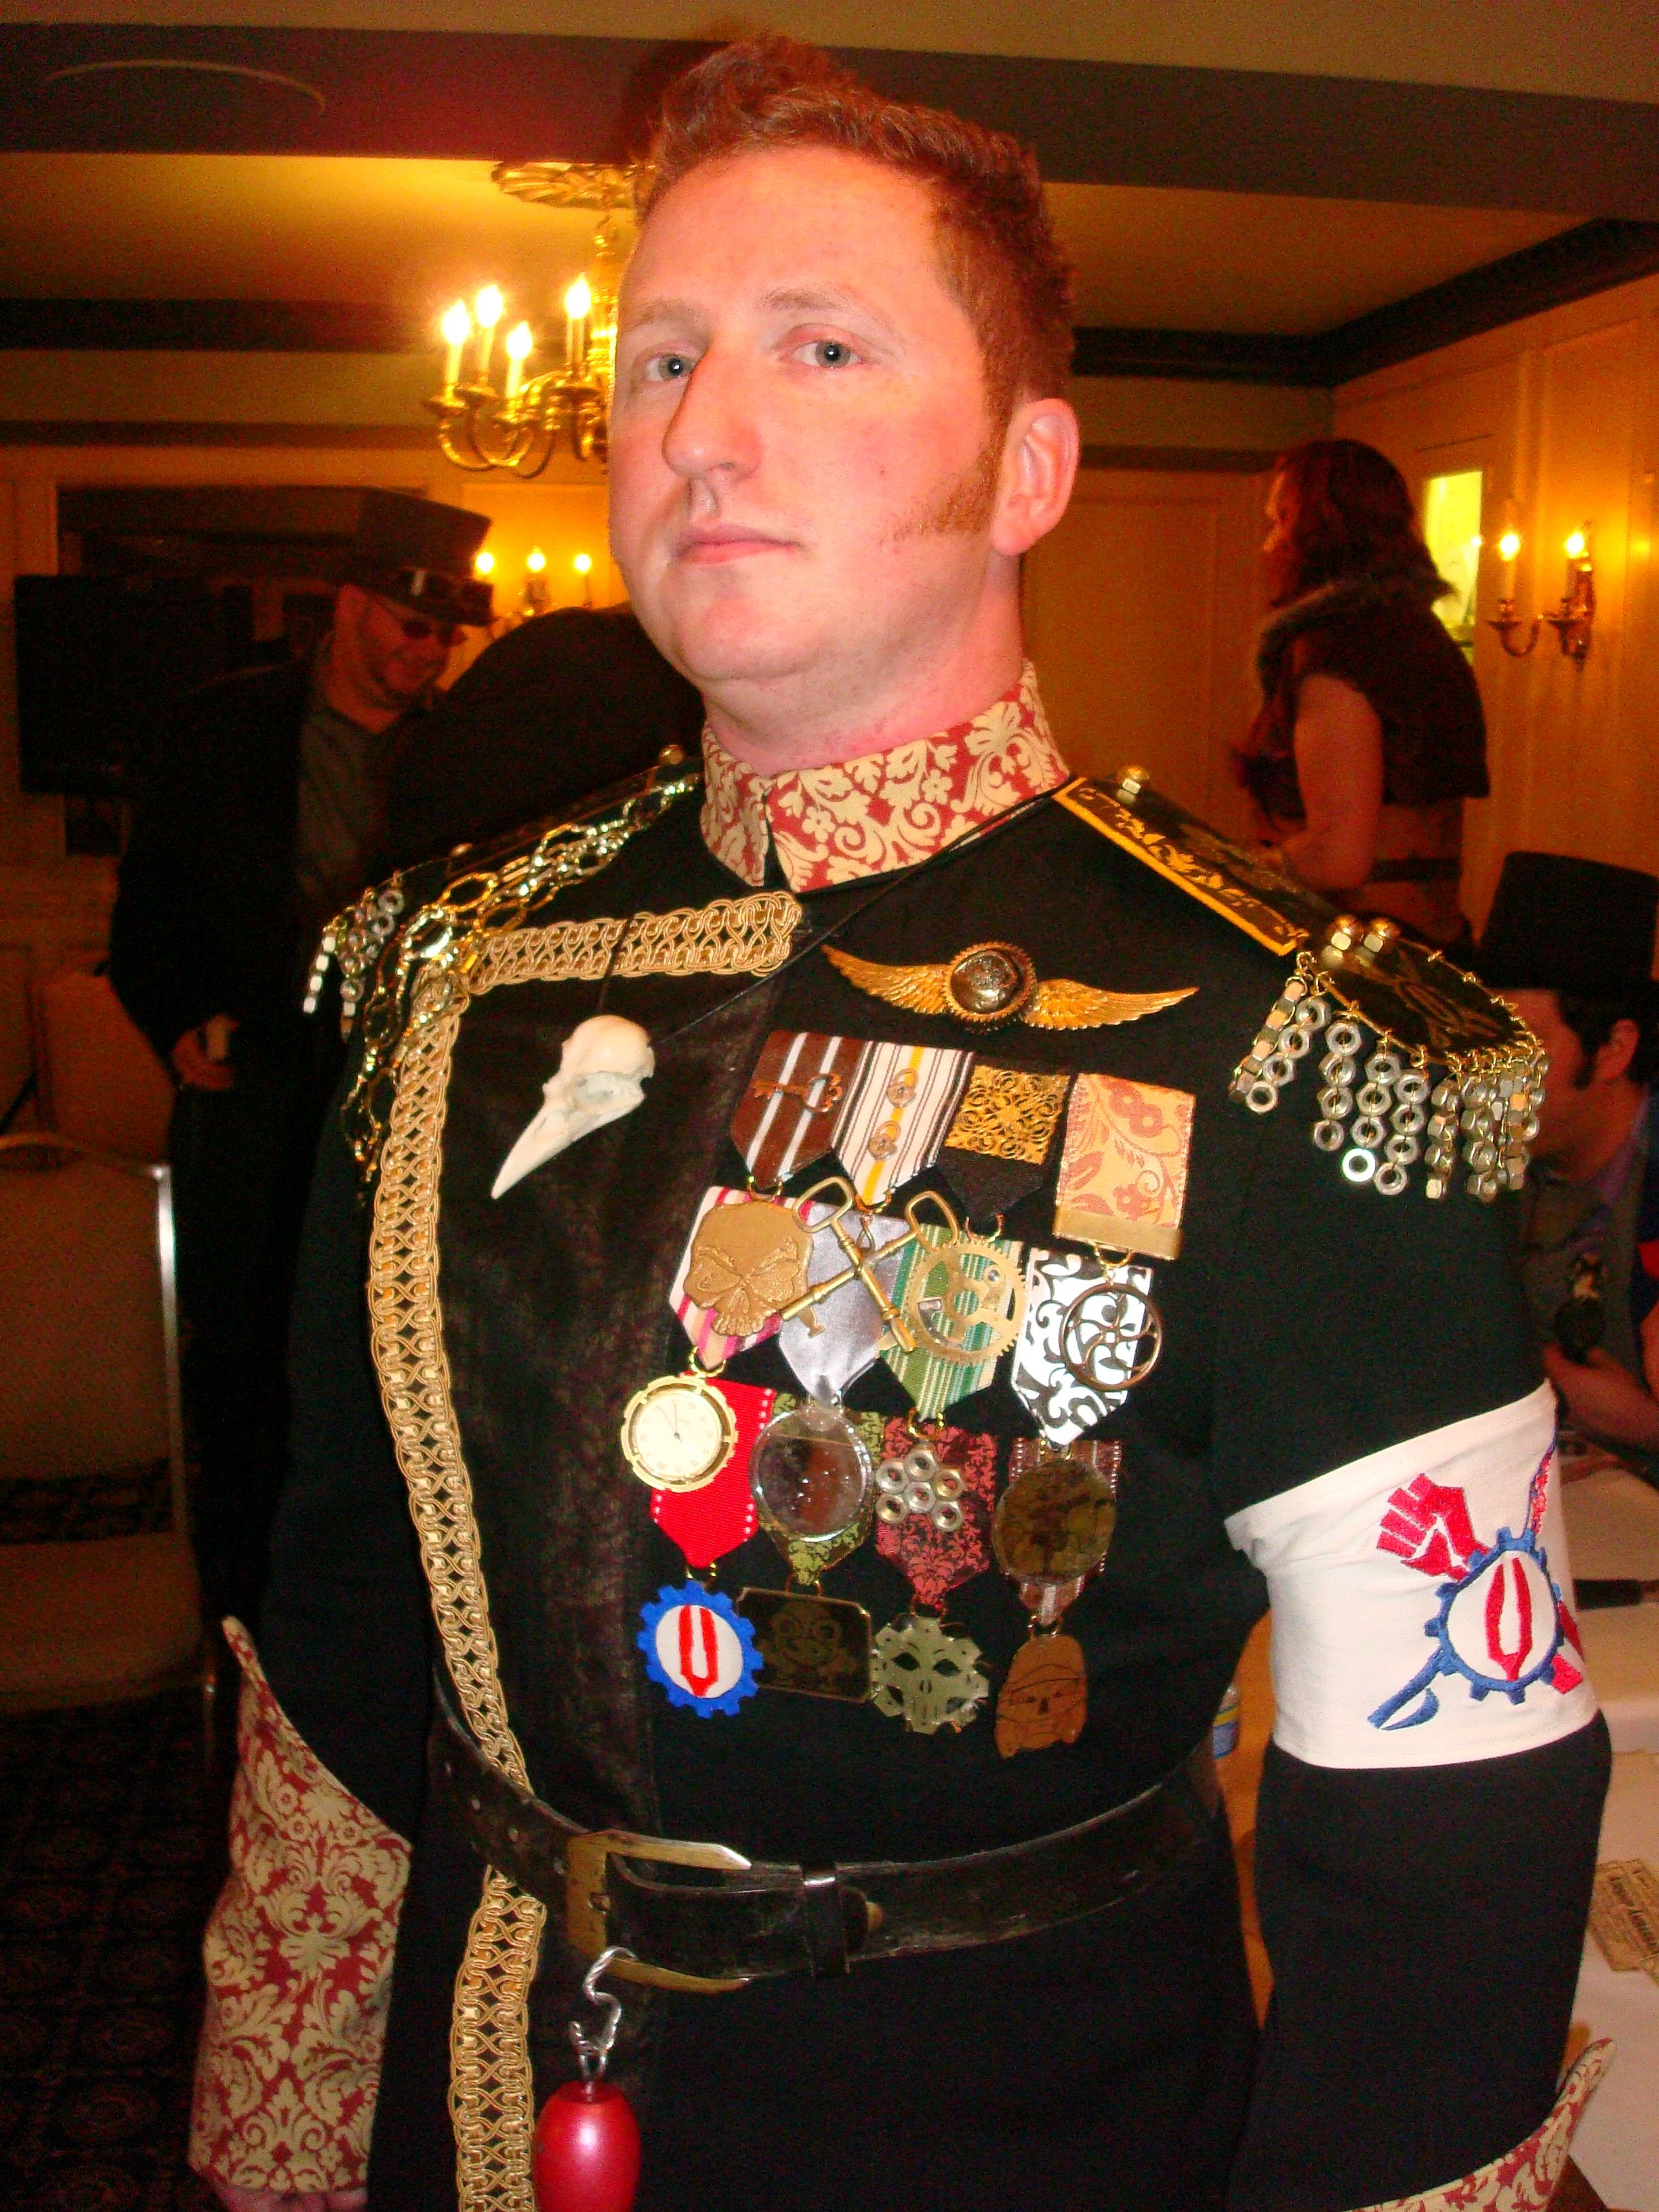 This gentleman of the Red Fork Empire has some truly EXCELLENT medals.